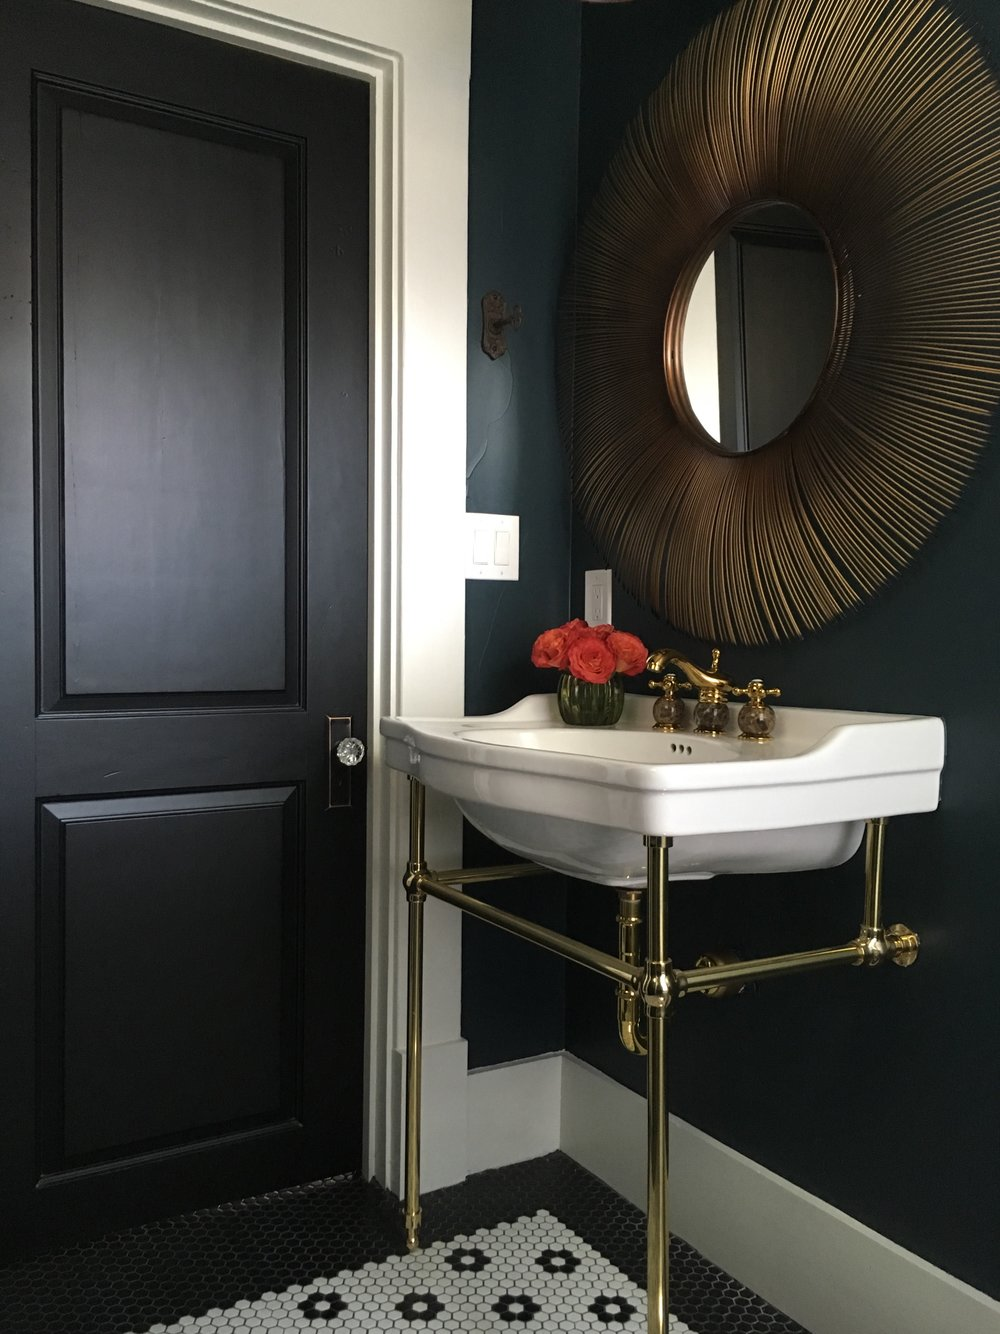 Navy and black powder bath in historic home